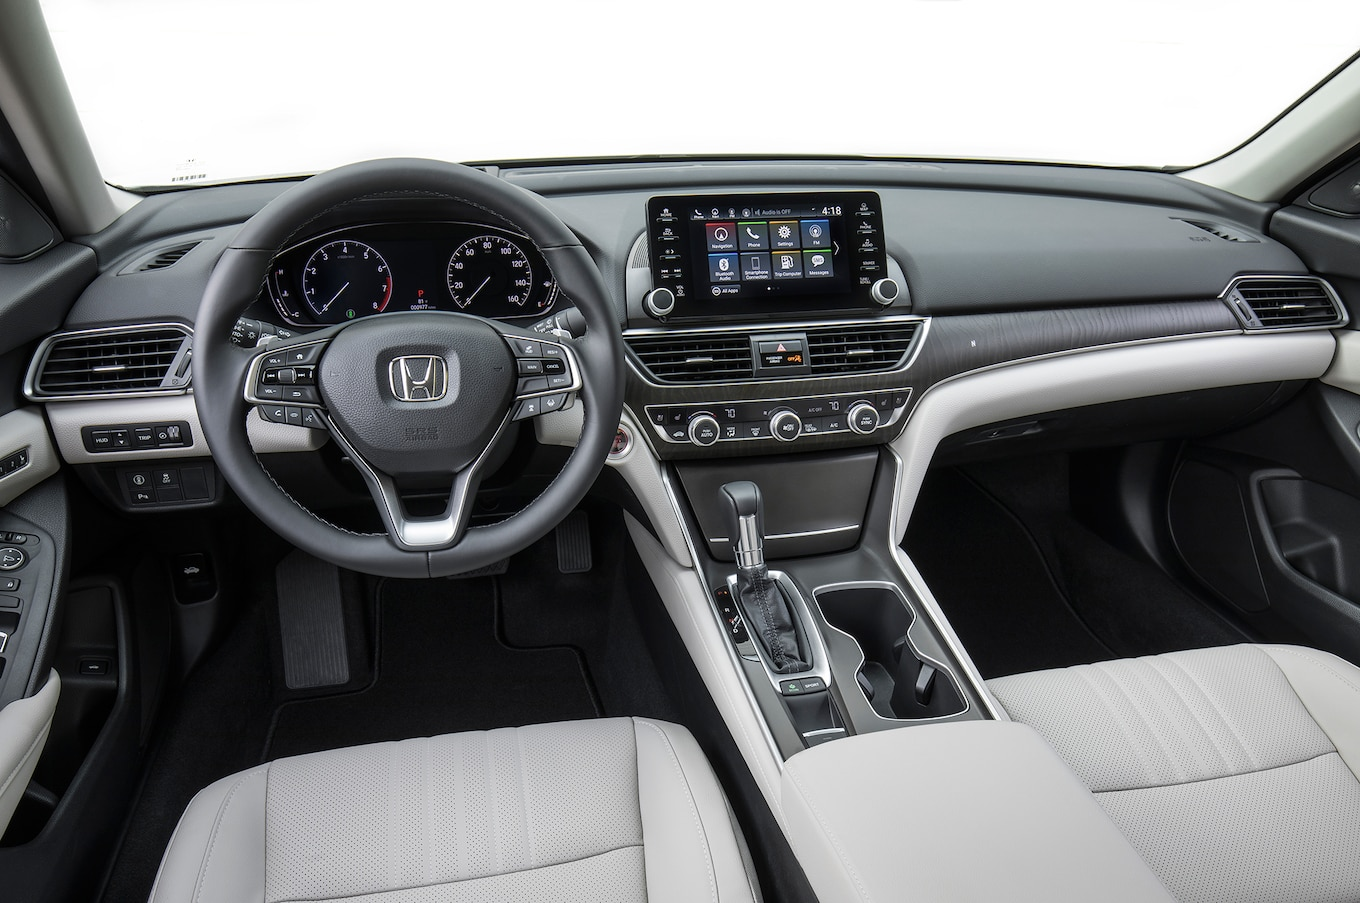 2018 Honda Accord Touring 1.5T Interior Cockpit Wallpapers #89 of 107